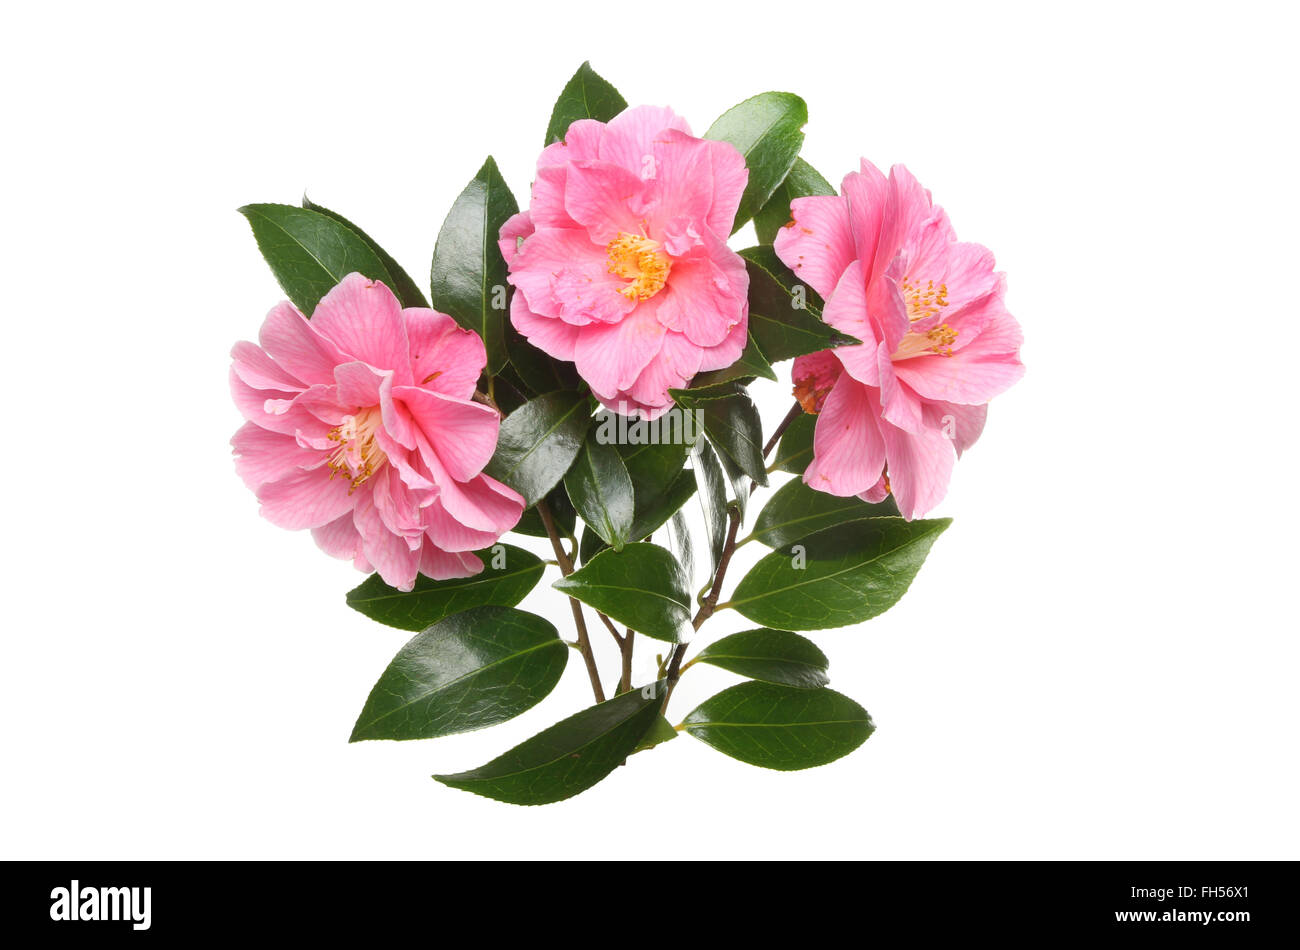 Three magenta Camellia flowers and evergreen glossy foliage isolated against white - Stock Image